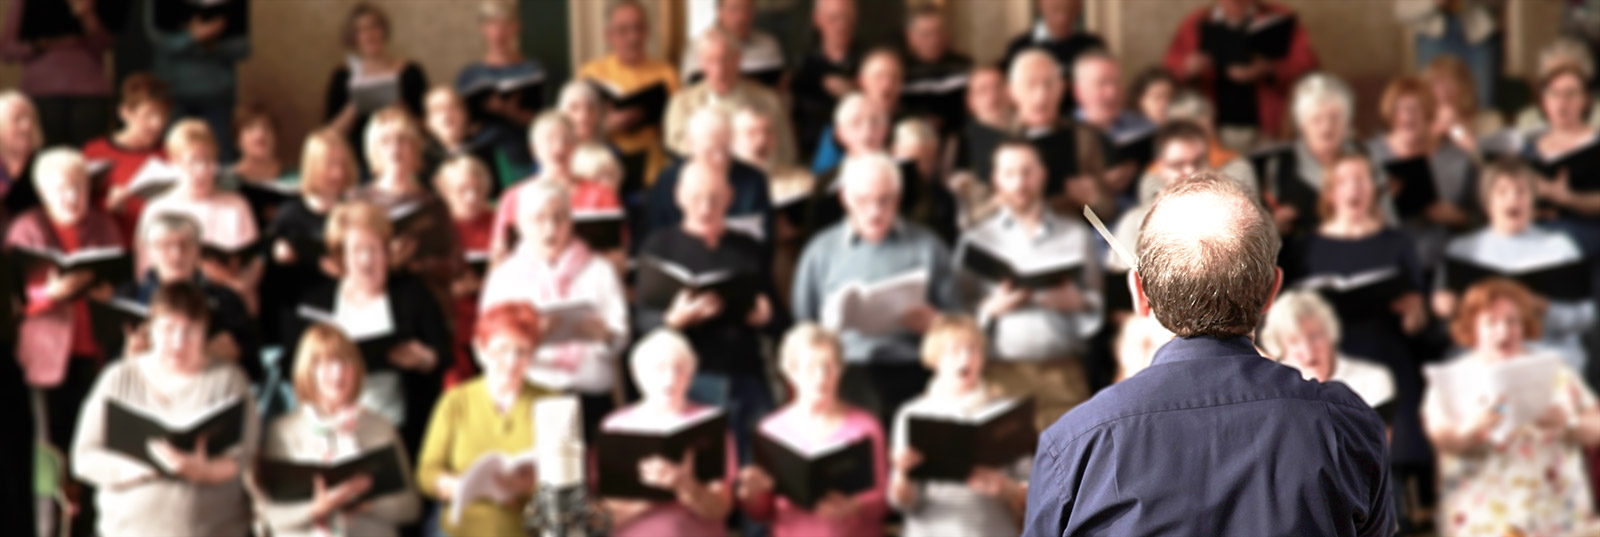 Take part in our new opera with your choir